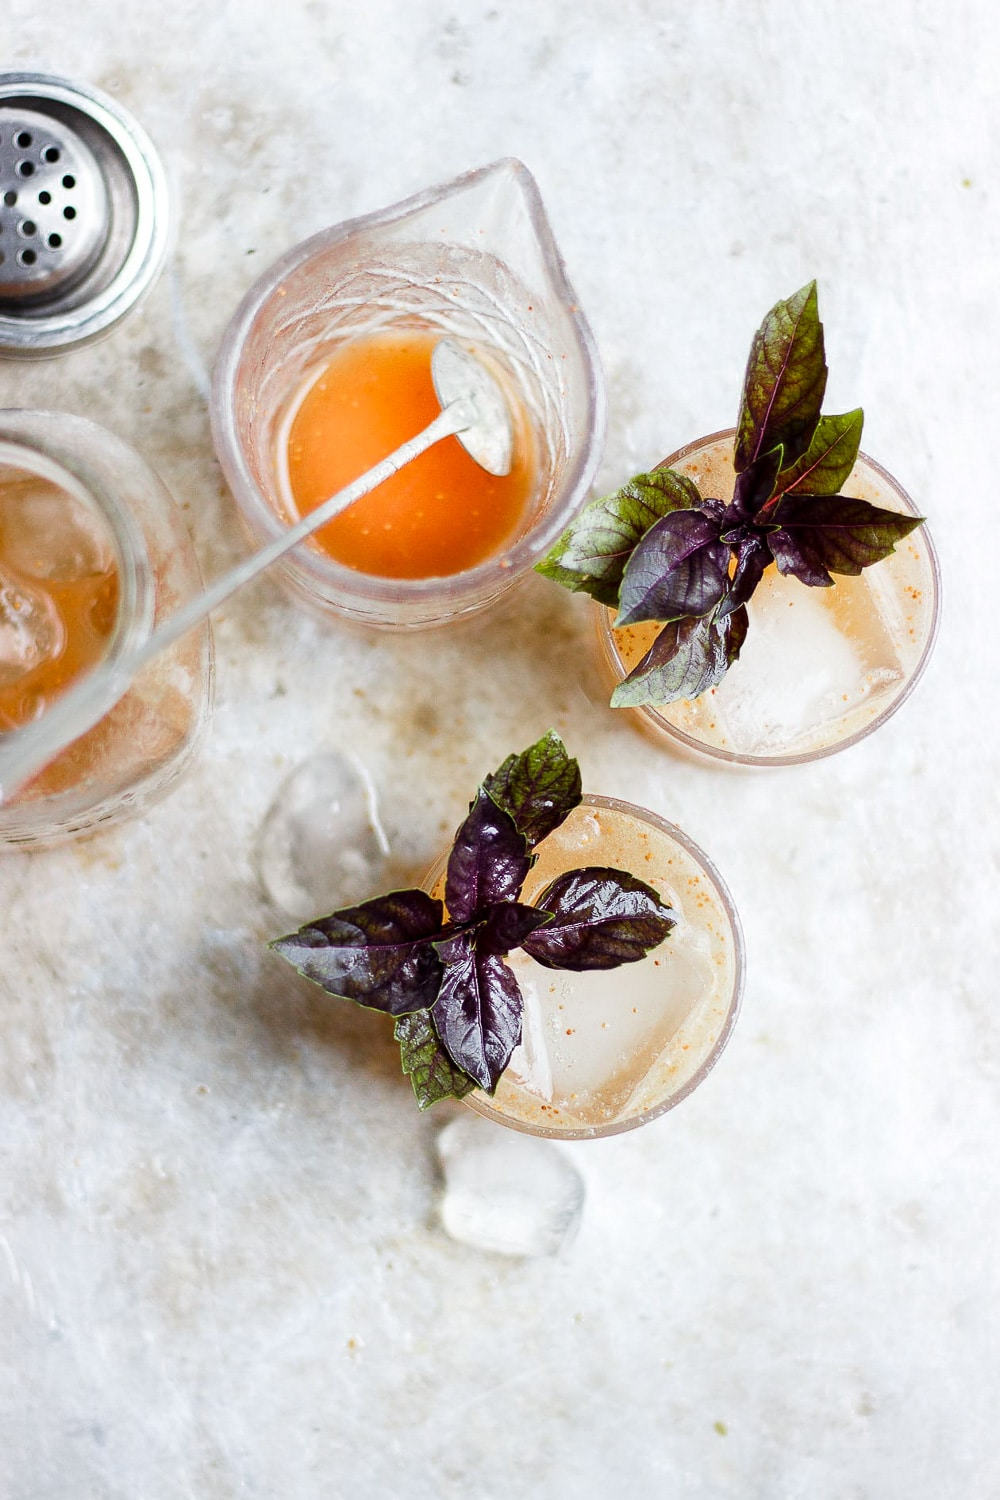 BASIL FIG VODKA SMASH WITH HONEY